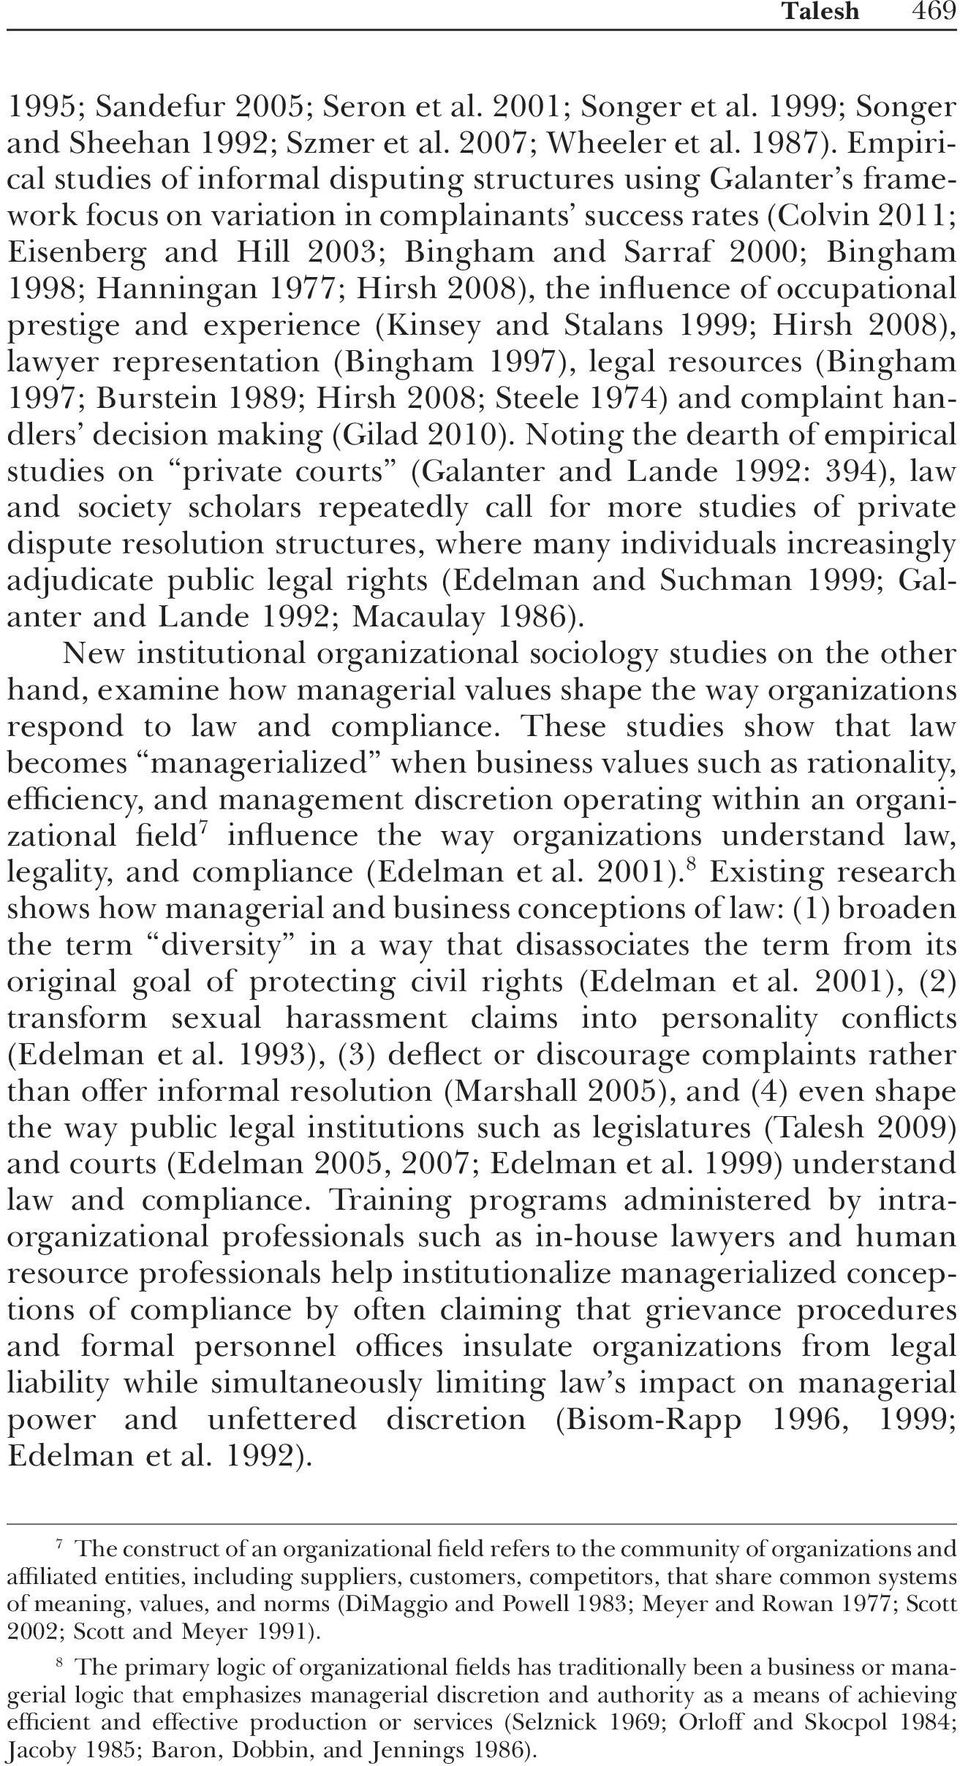 1998; Hanningan 1977; Hirsh 2008), the influence of occupational prestige and experience (Kinsey and Stalans 1999; Hirsh 2008), lawyer representation (Bingham 1997), legal resources (Bingham 1997;